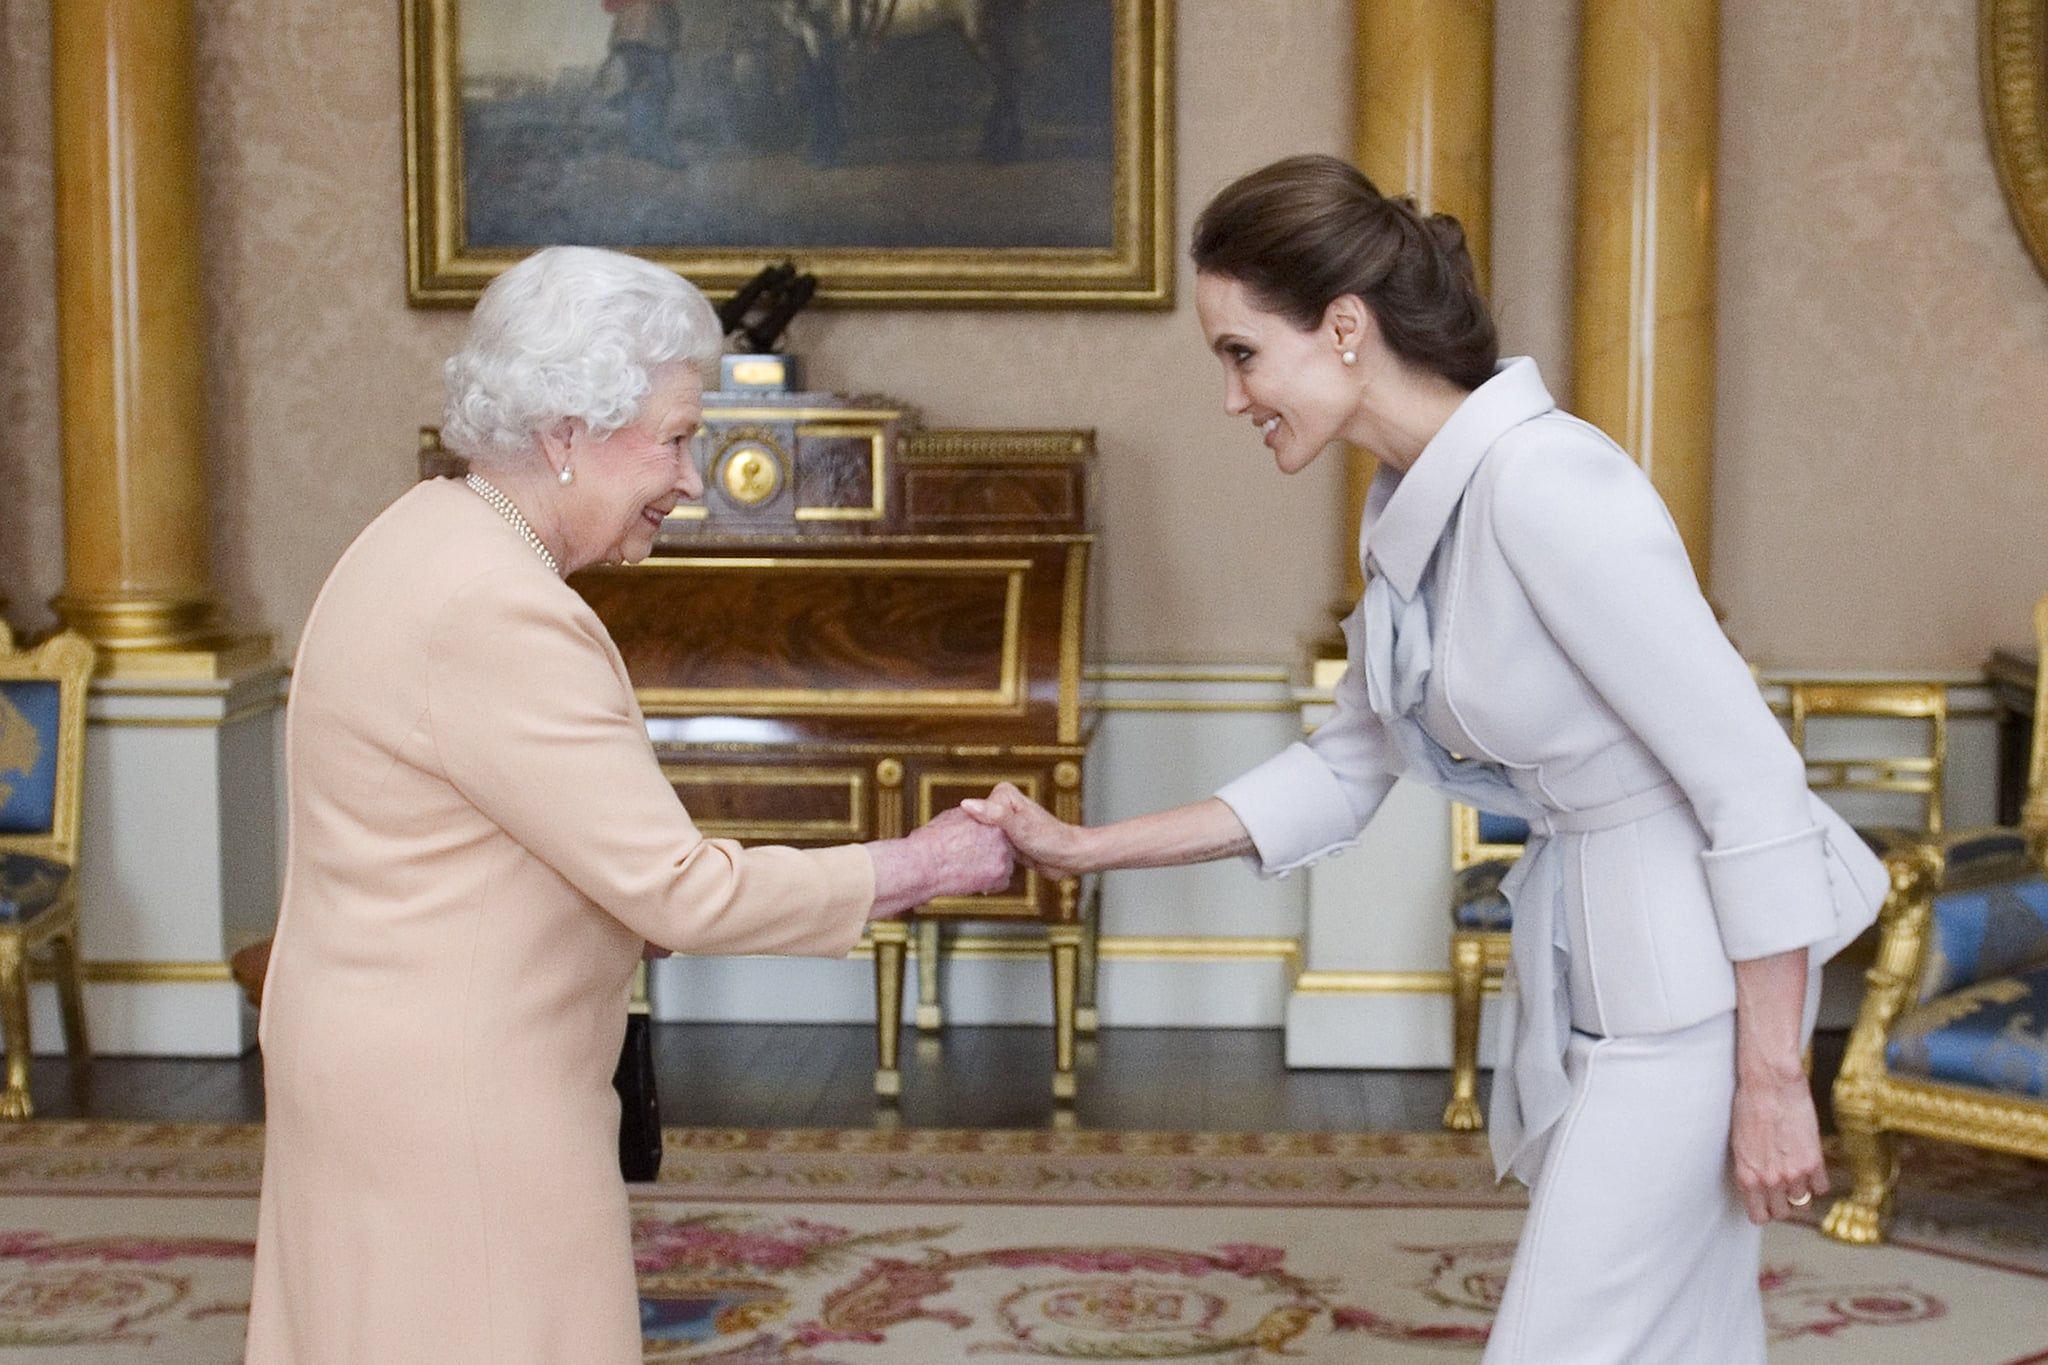 US actress Angelina Jolie (R) is presented with the Insignia of an Honorary Dame Grand Cross of the Most Distinguished Order of St Michael and St George by Britain's Queen Elizabeth II in the 1844 Room at Buckingham Palace in central London, on October 10, 2014. Angelina Jolie was awarded an honorary damehood (DCMG) for services to UK foreign policy and the campaign to end war zone sexual violence. AFP PHOTO/Anthony Devlin/POOL        (Photo credit should read Anthony Devlin/AFP/Getty Images)